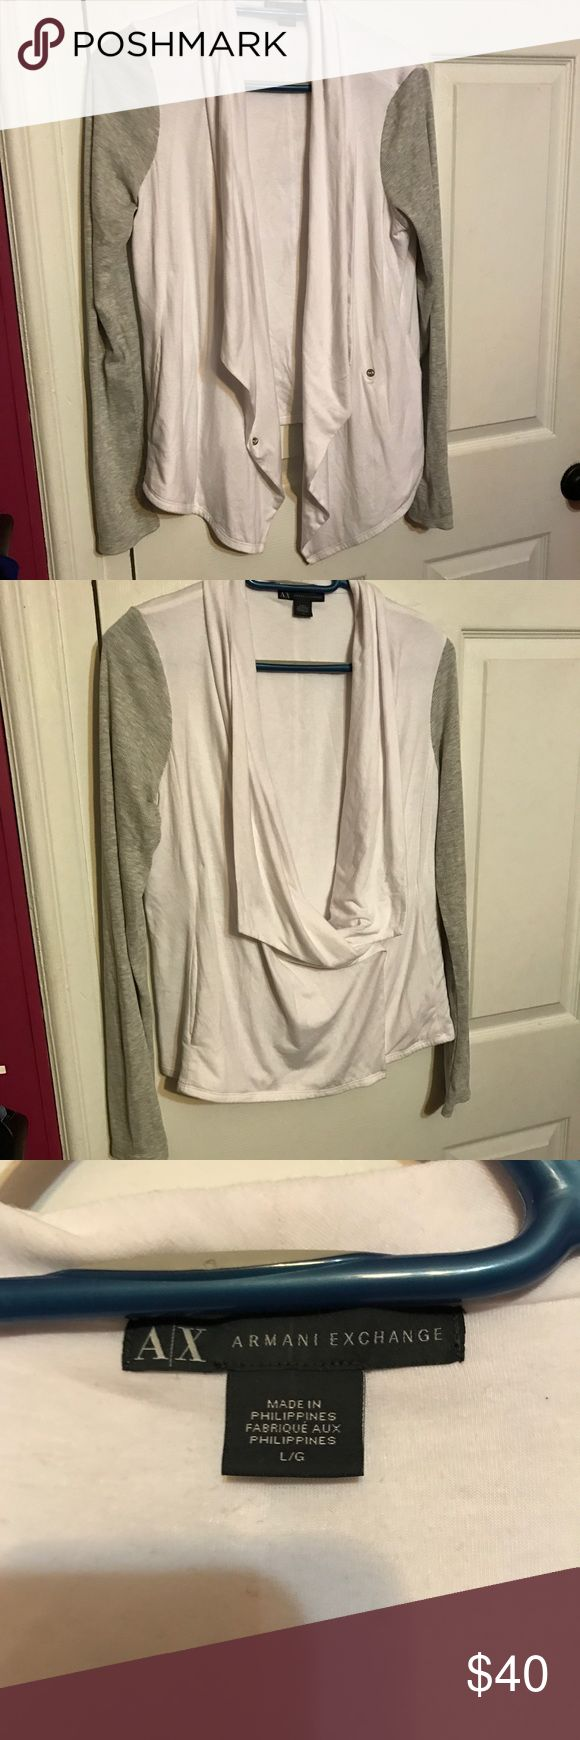 EUC Armani Exchange draped sweater EUC Armani Exchange sweater. Gray, ribbed sleeves. White, soft material for the body. Can leave front hanging open for a draped look or button to each inside for a closed look. Worn once. No flaws. Armani Exchange Sweaters Cardigans